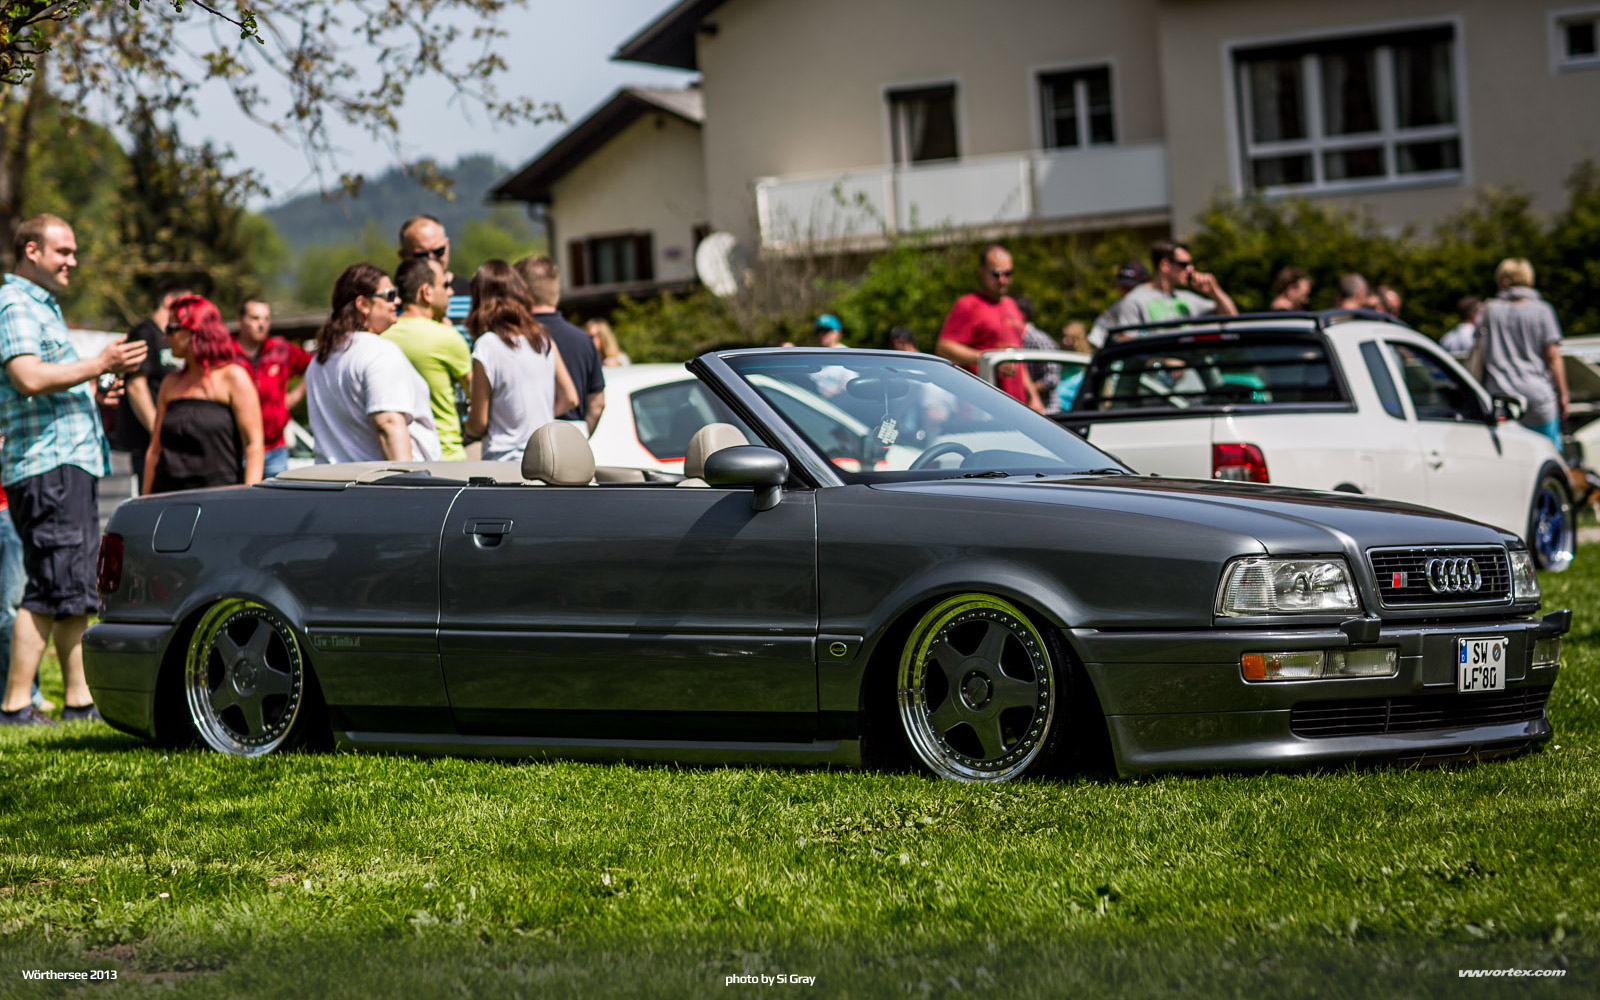 worthersee-2013-gallery-si-gray-164